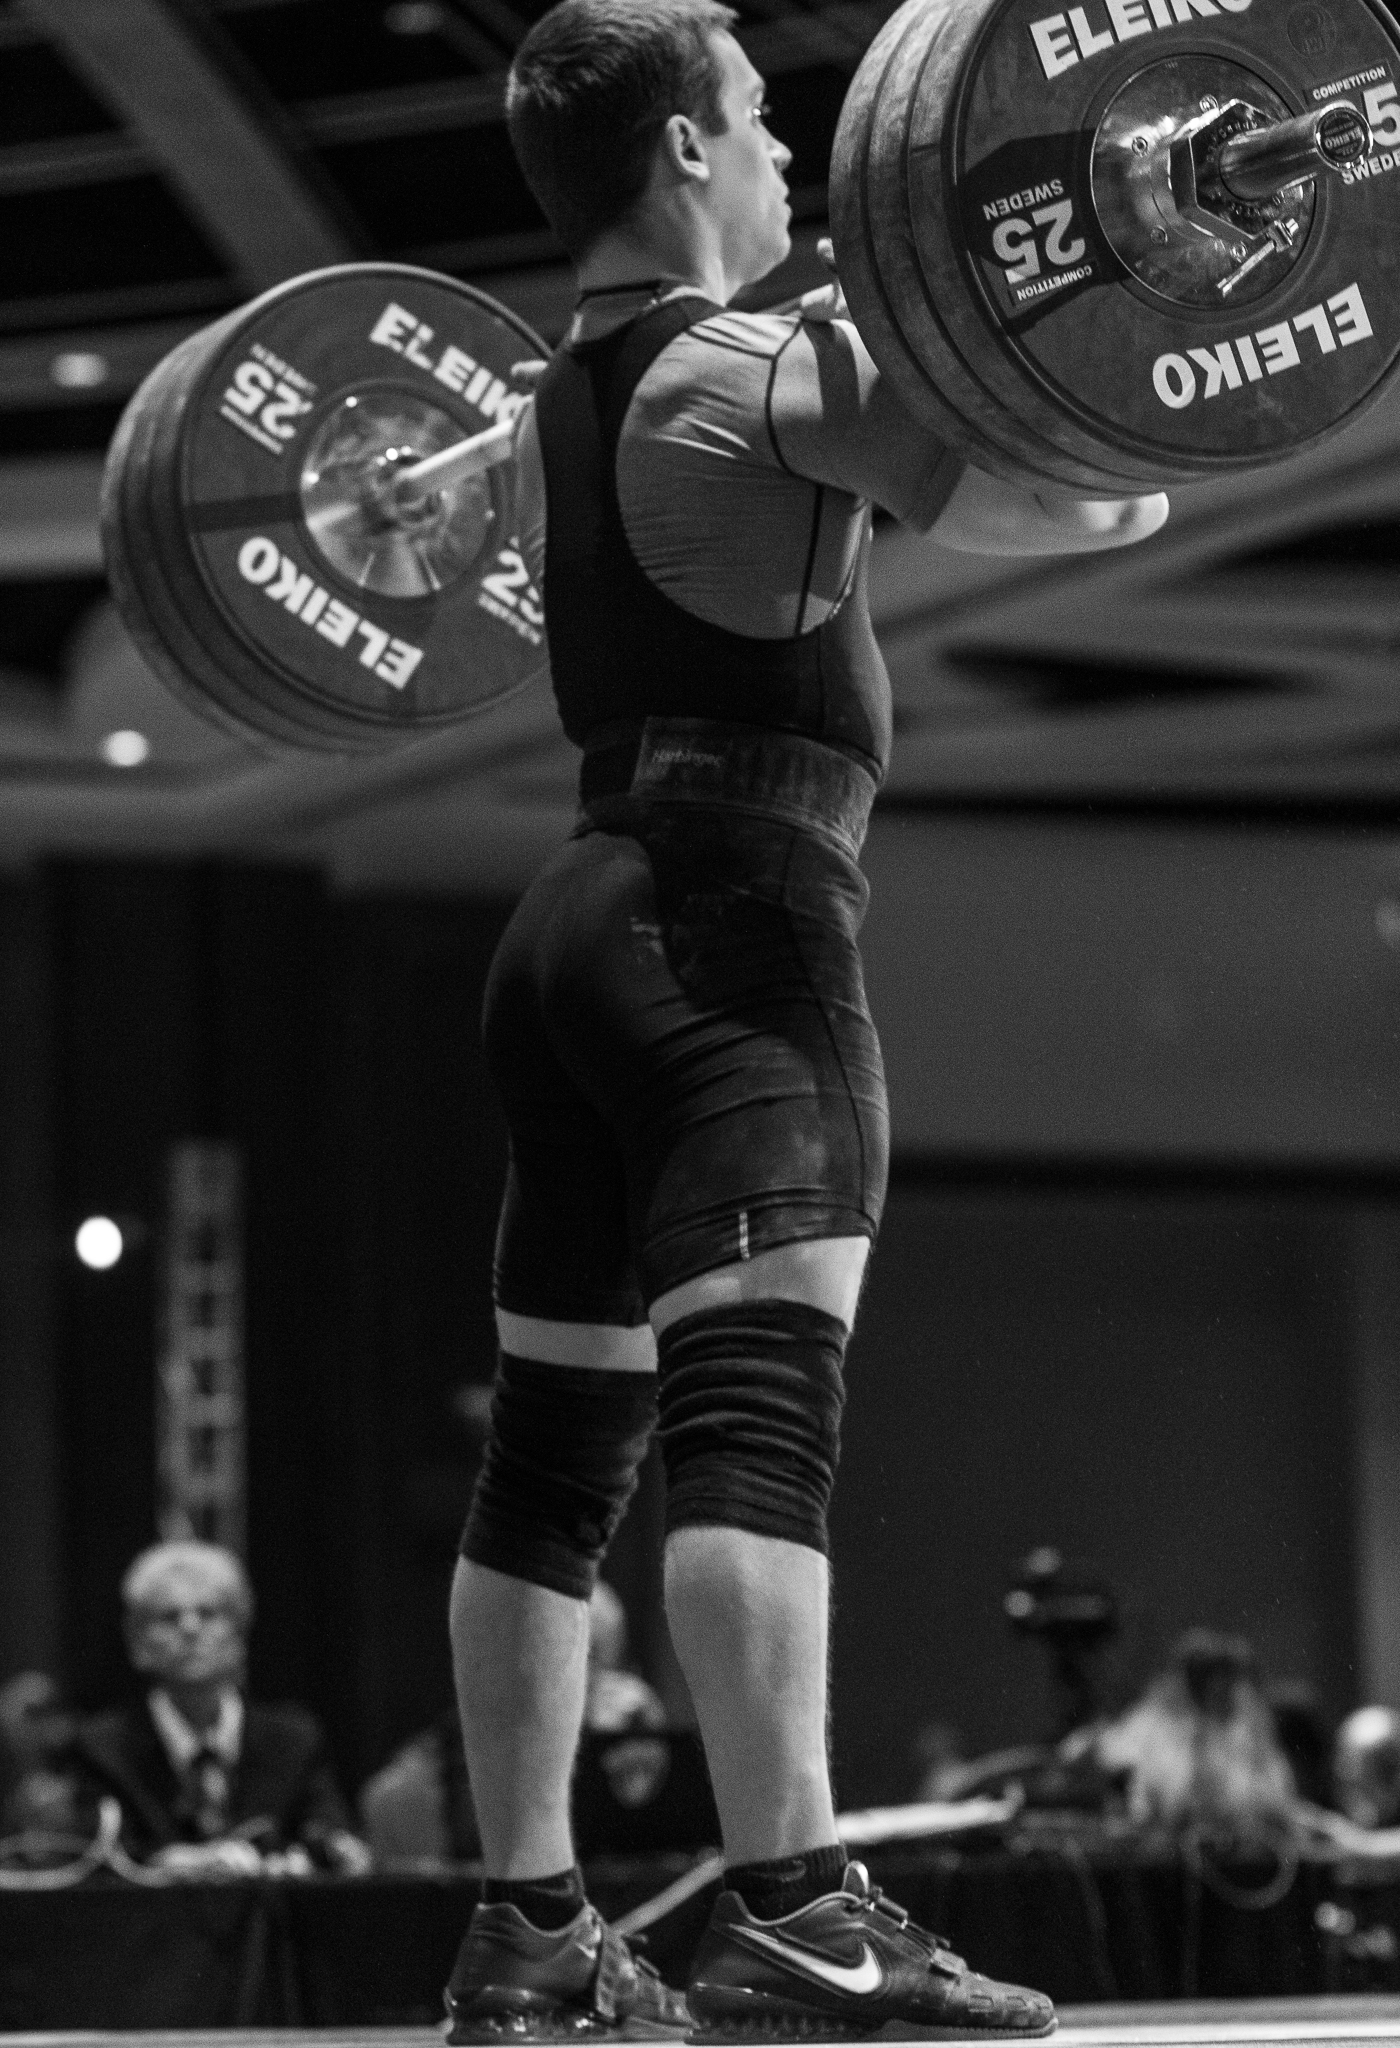 session-a-favorites-american-open-2016-weightlifting-photography (31 of 38).jpg